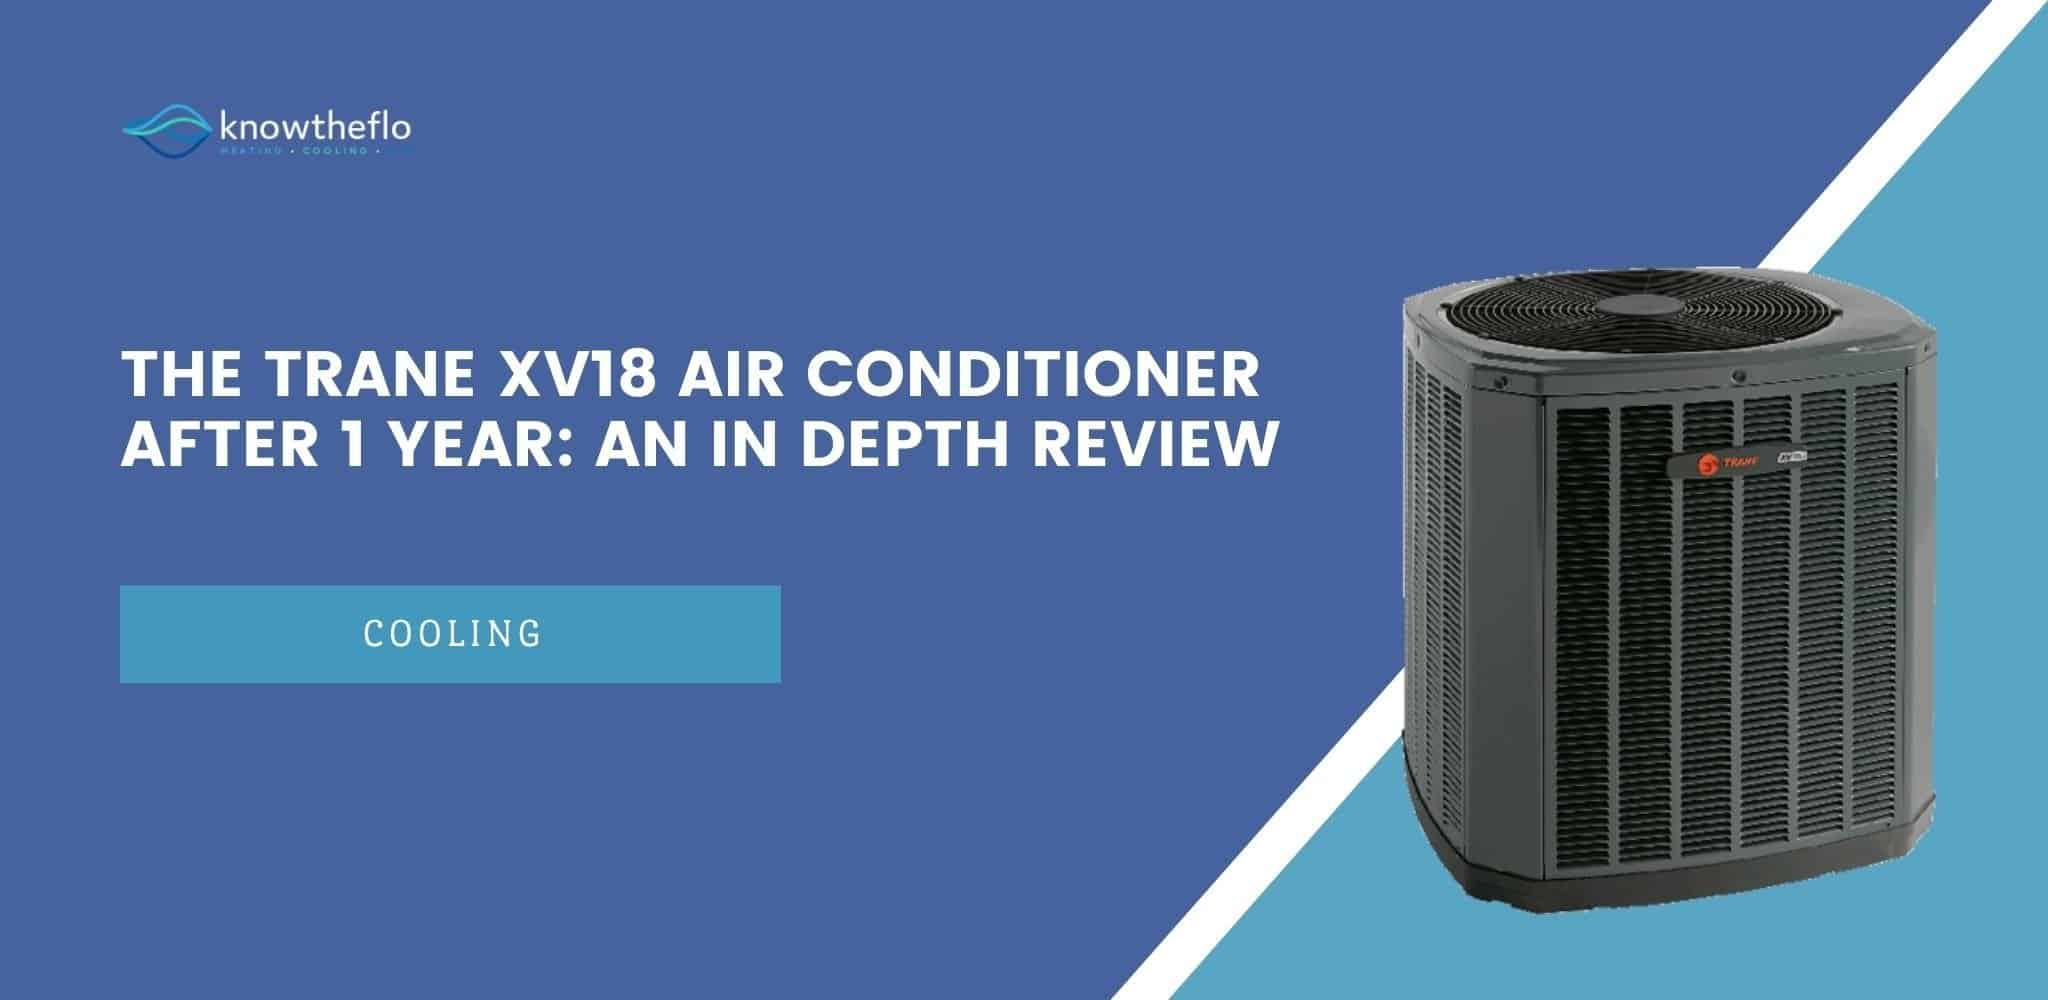 The Trane XV18 Air Conditioner After 1 Year - An In Depth Review